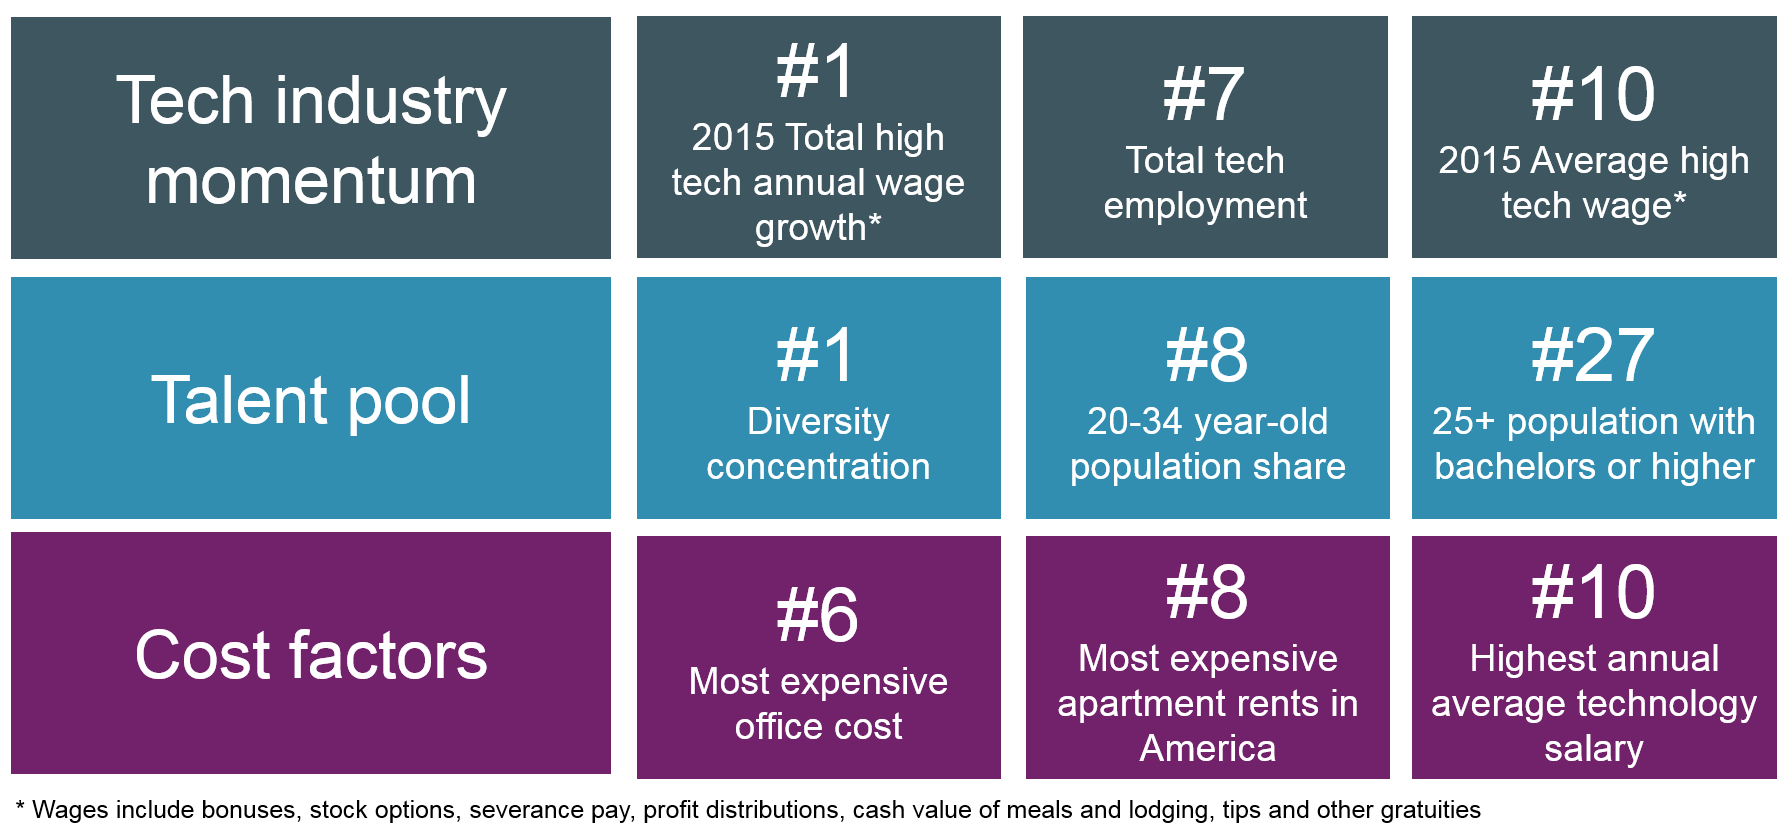 Los Angeles named most diverse tech market